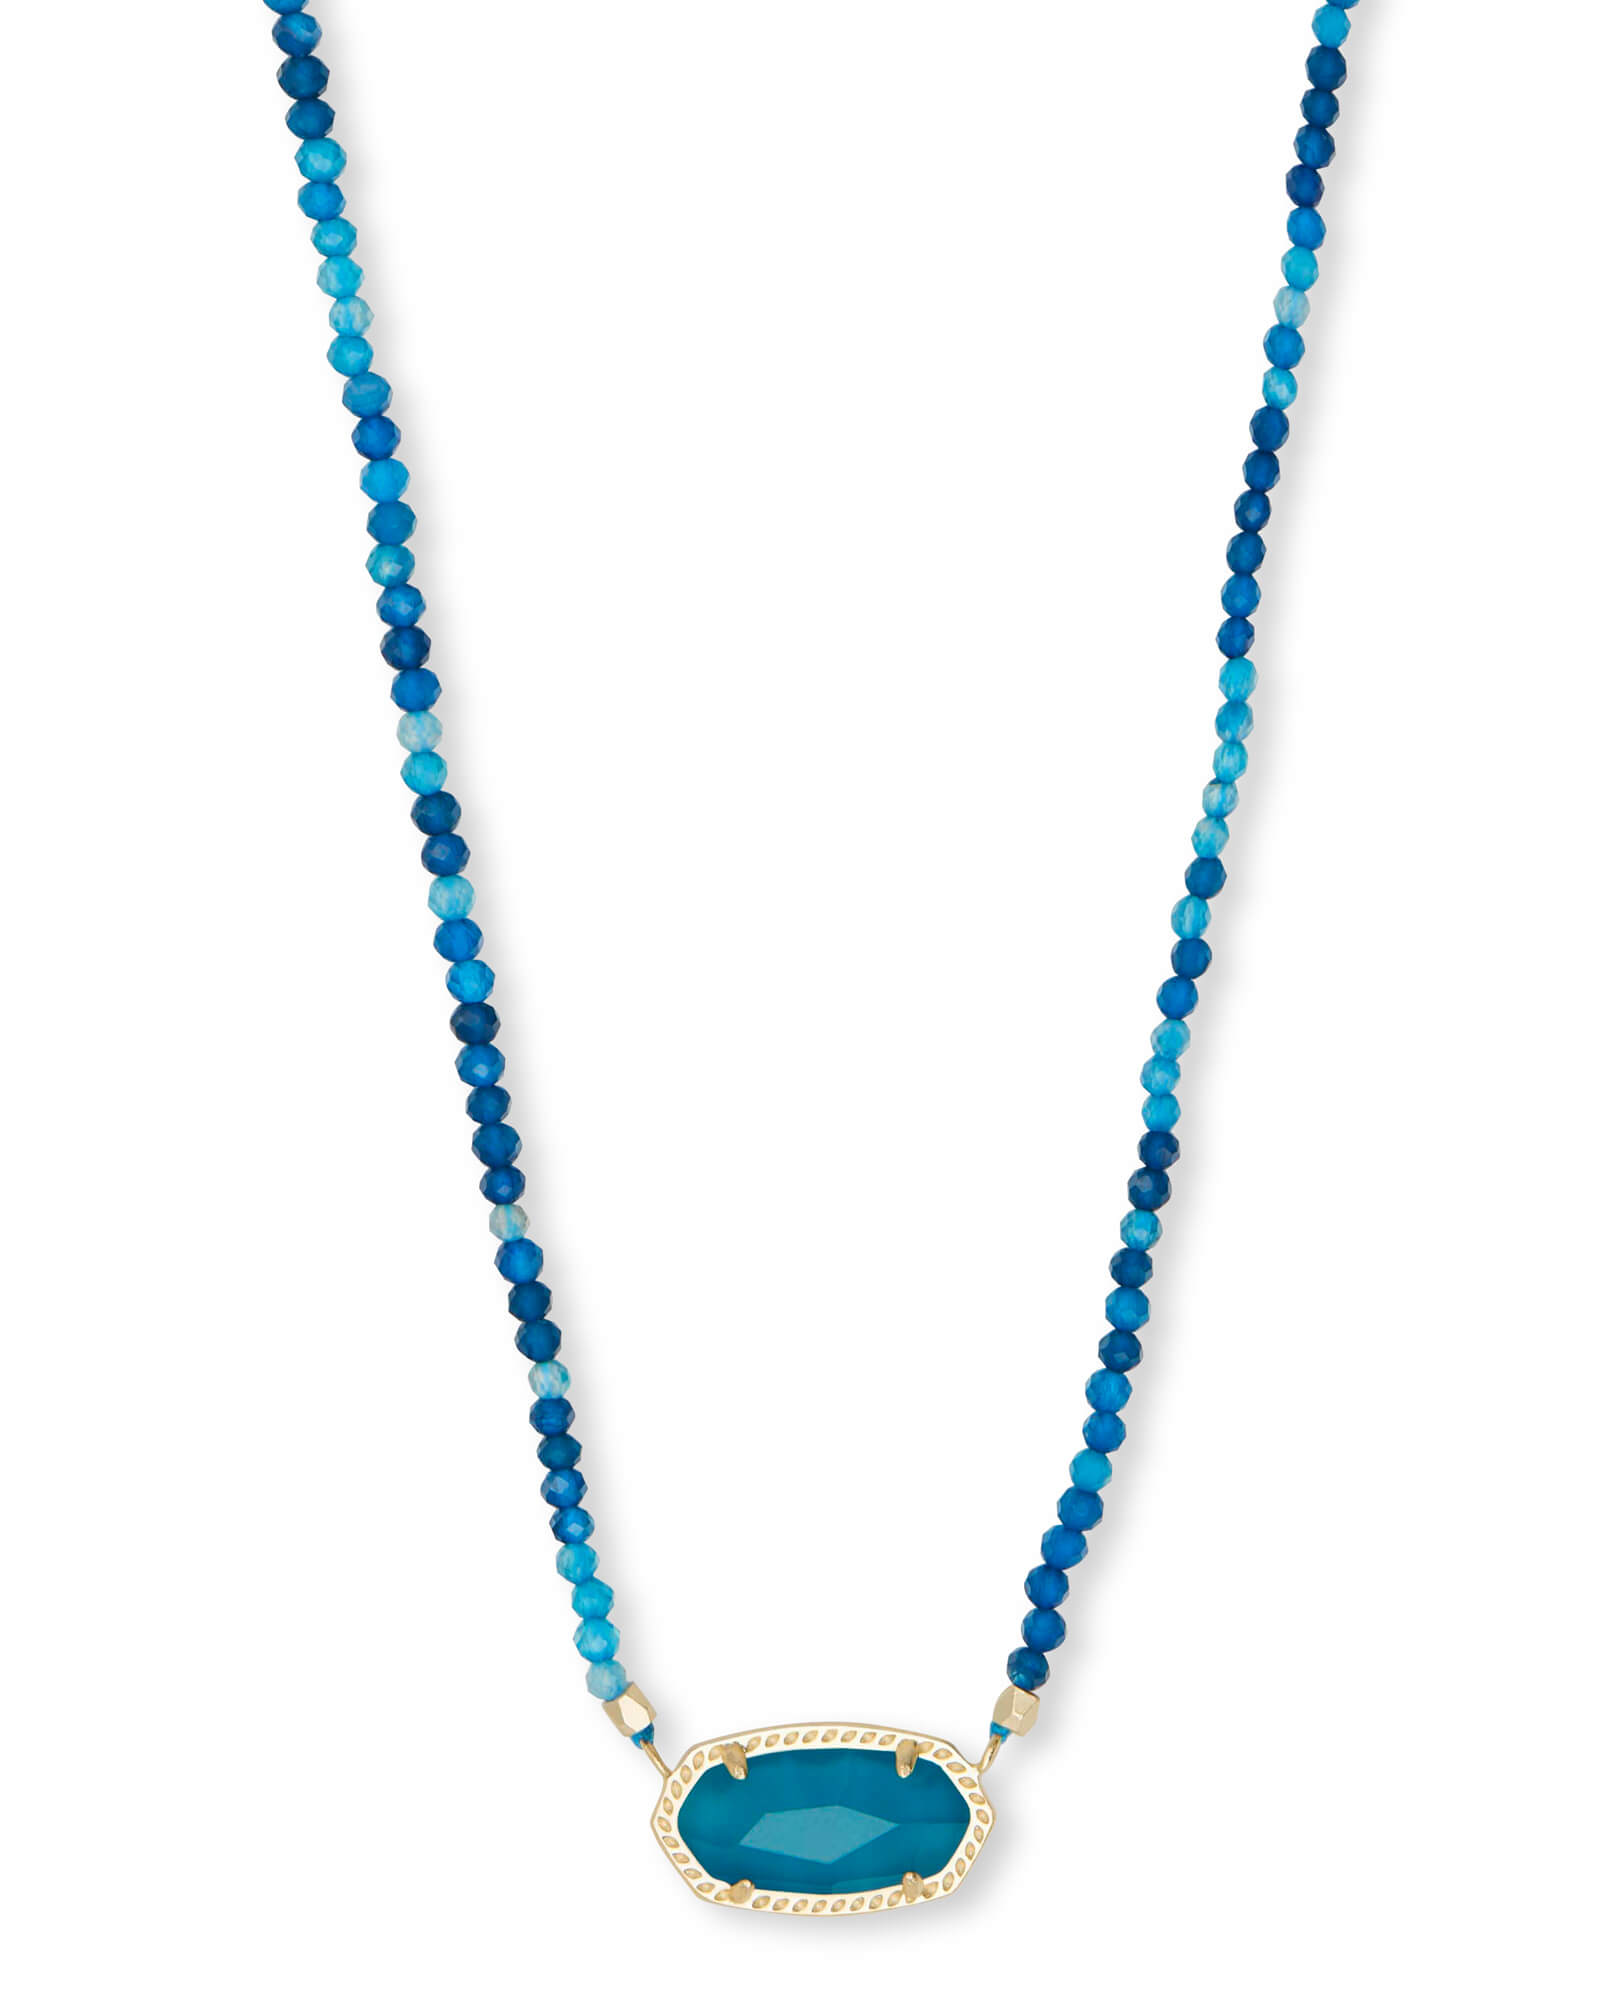 Elisa Gold Beaded Pendant Necklace in Teal Agate